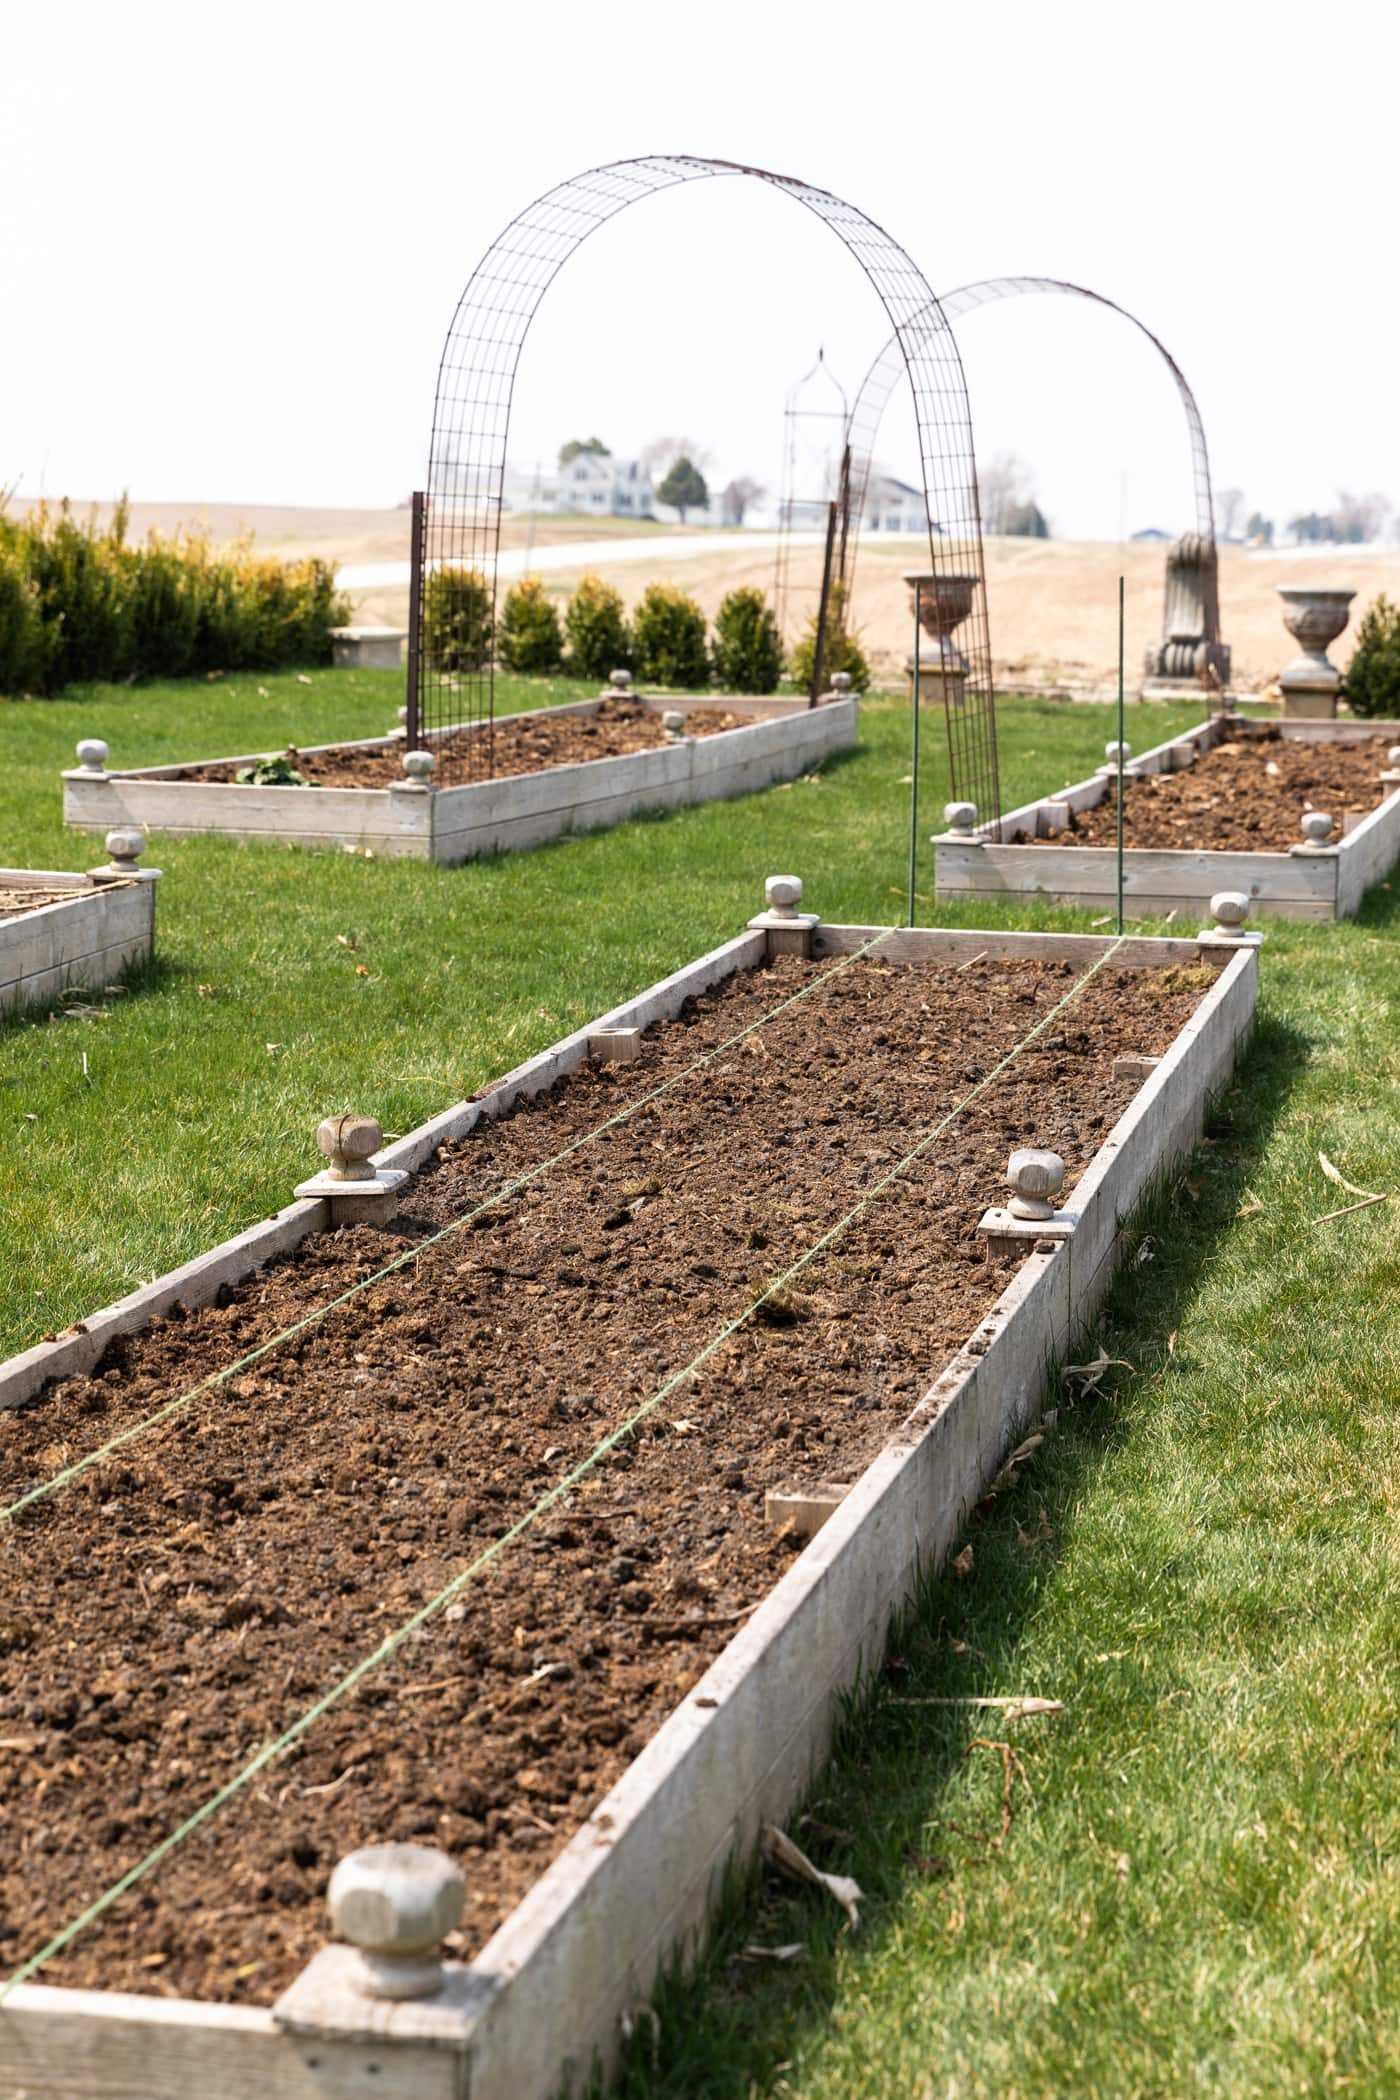 Raised garden bed filled with dirt surrounded by green grass with arches in distance